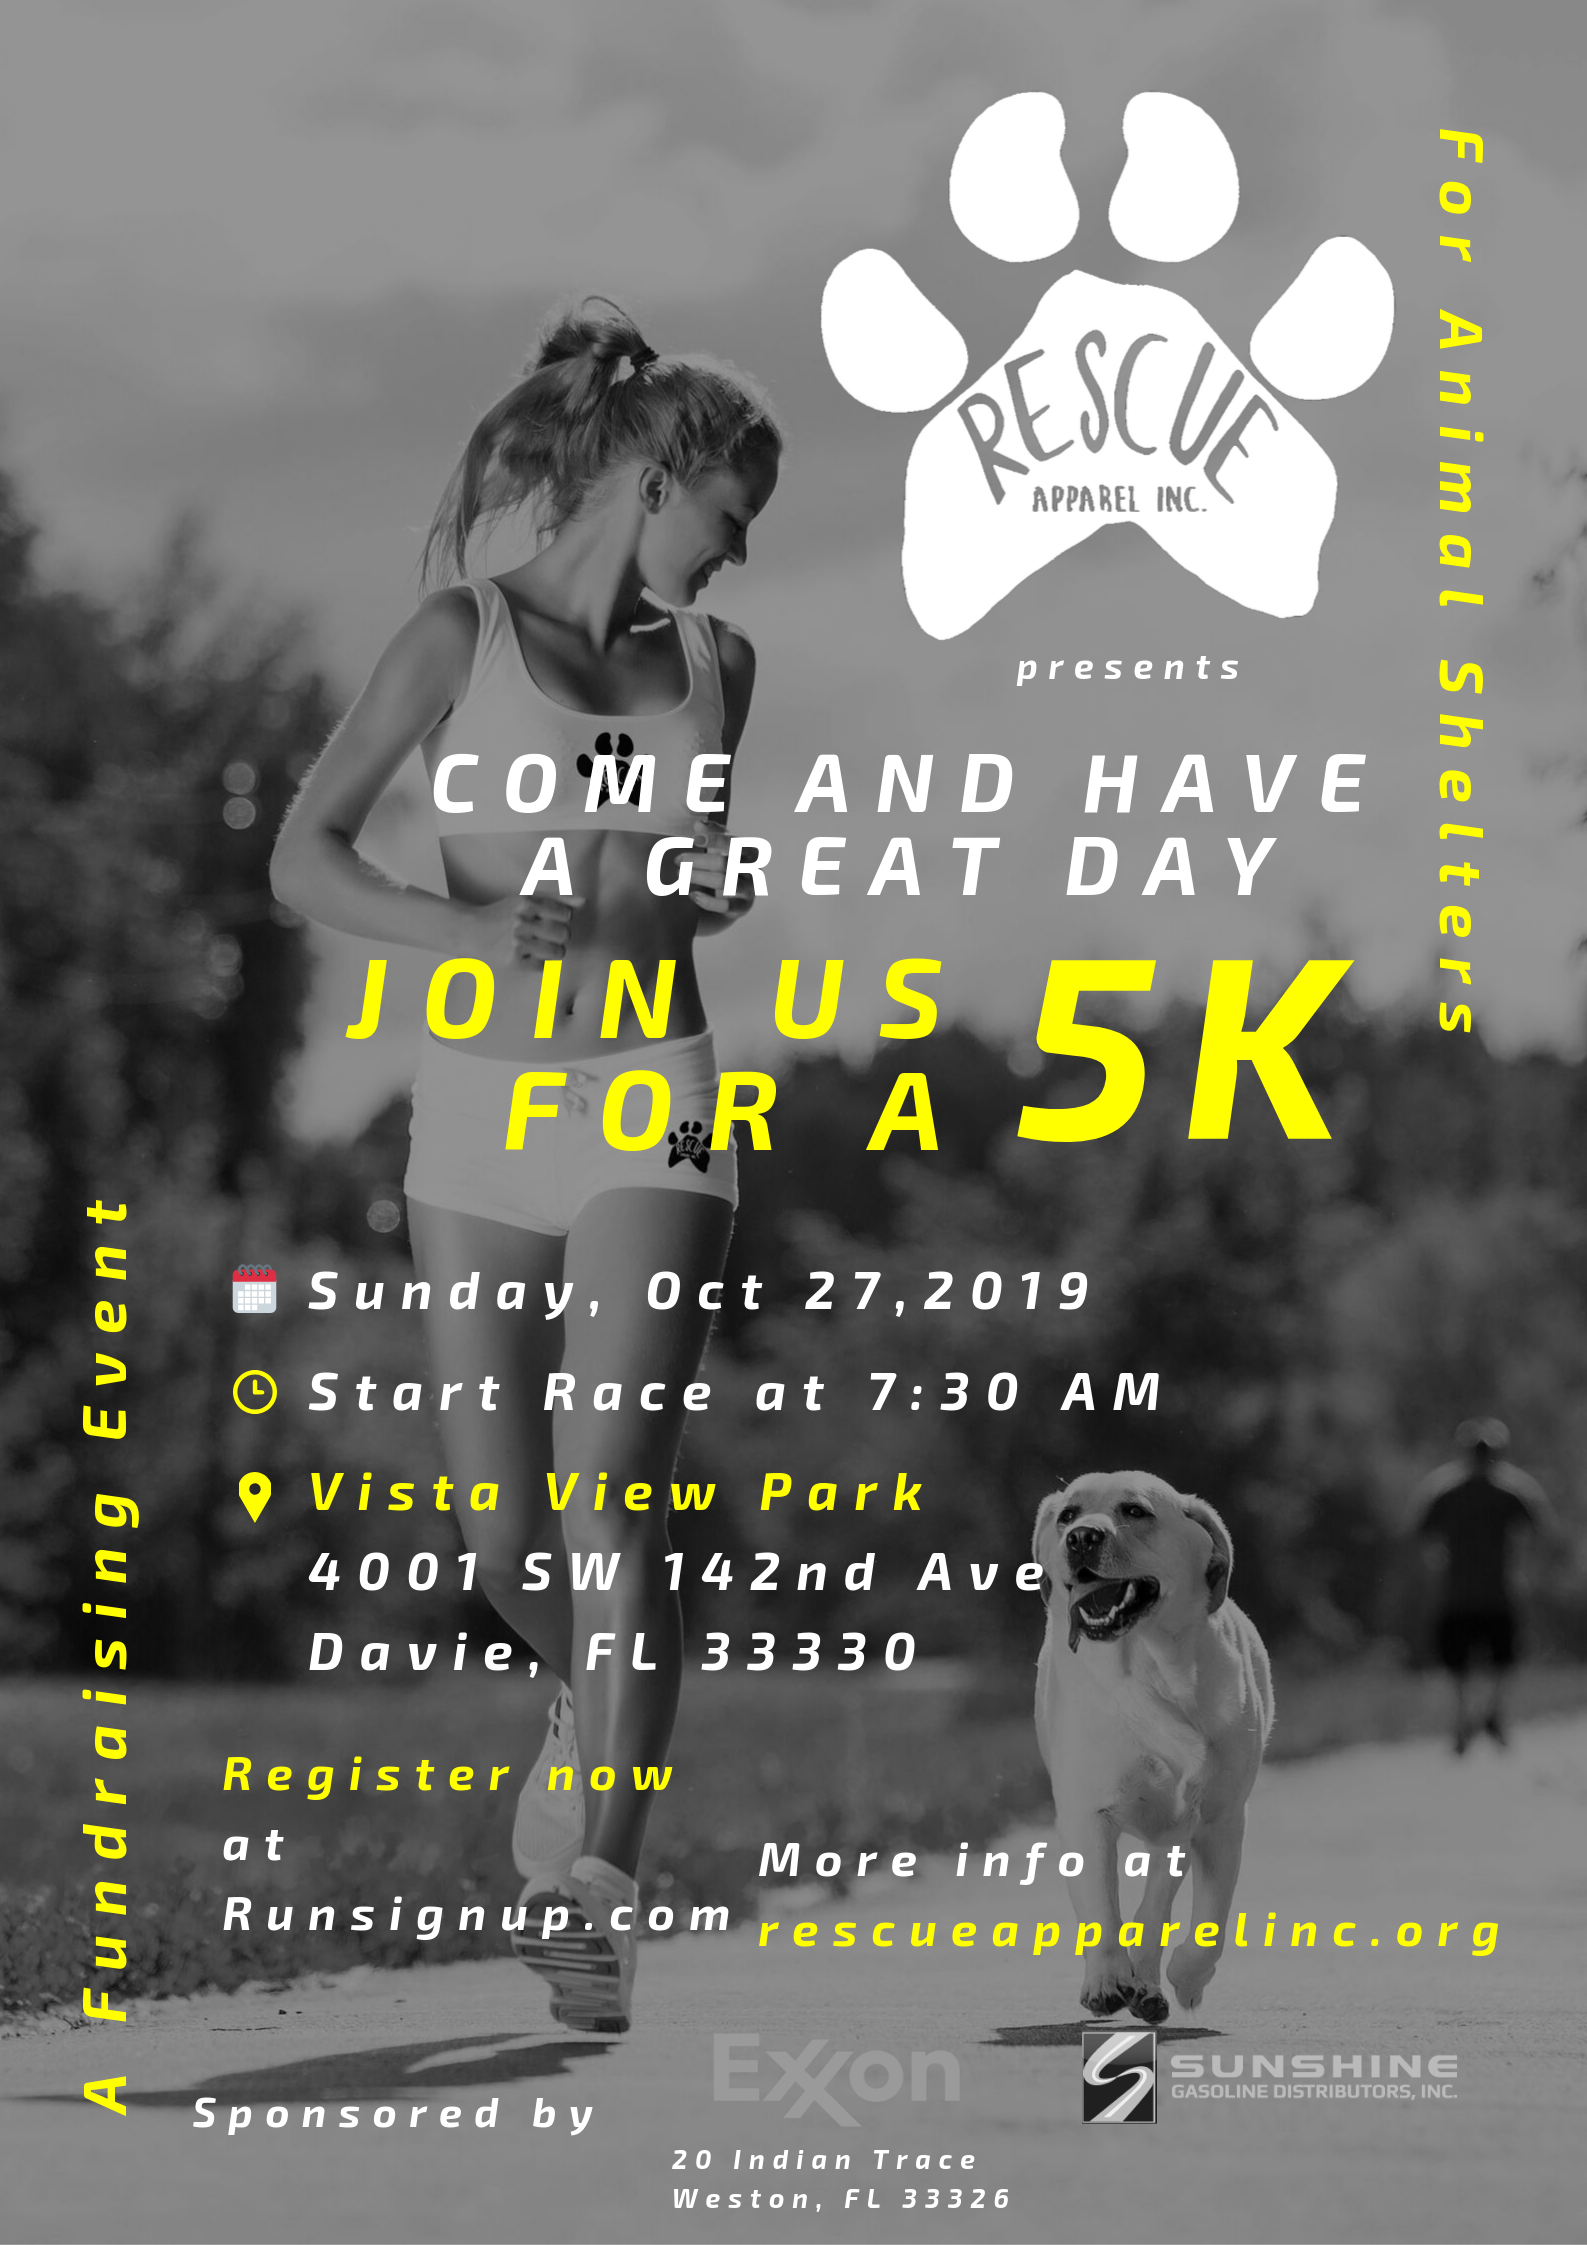 I want to Volunteer - At the 5K on October 27, 2019 we will help feed two shelters:- South Florida -Broward Animal Services- An impacted shelter in the Bahamas